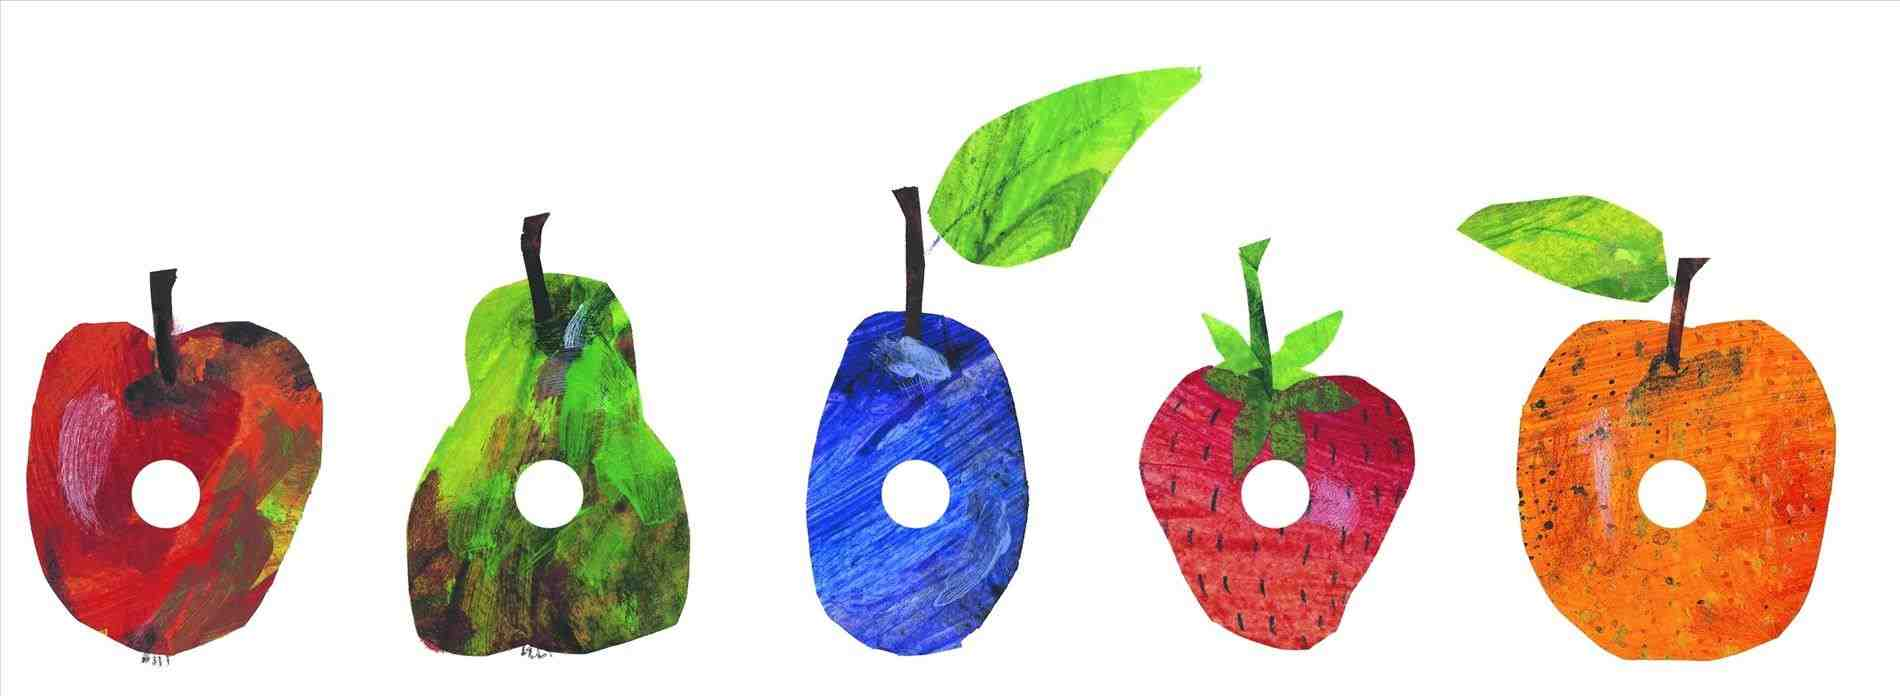 The Hungry Caterpillar Clipart at GetDrawings.com.